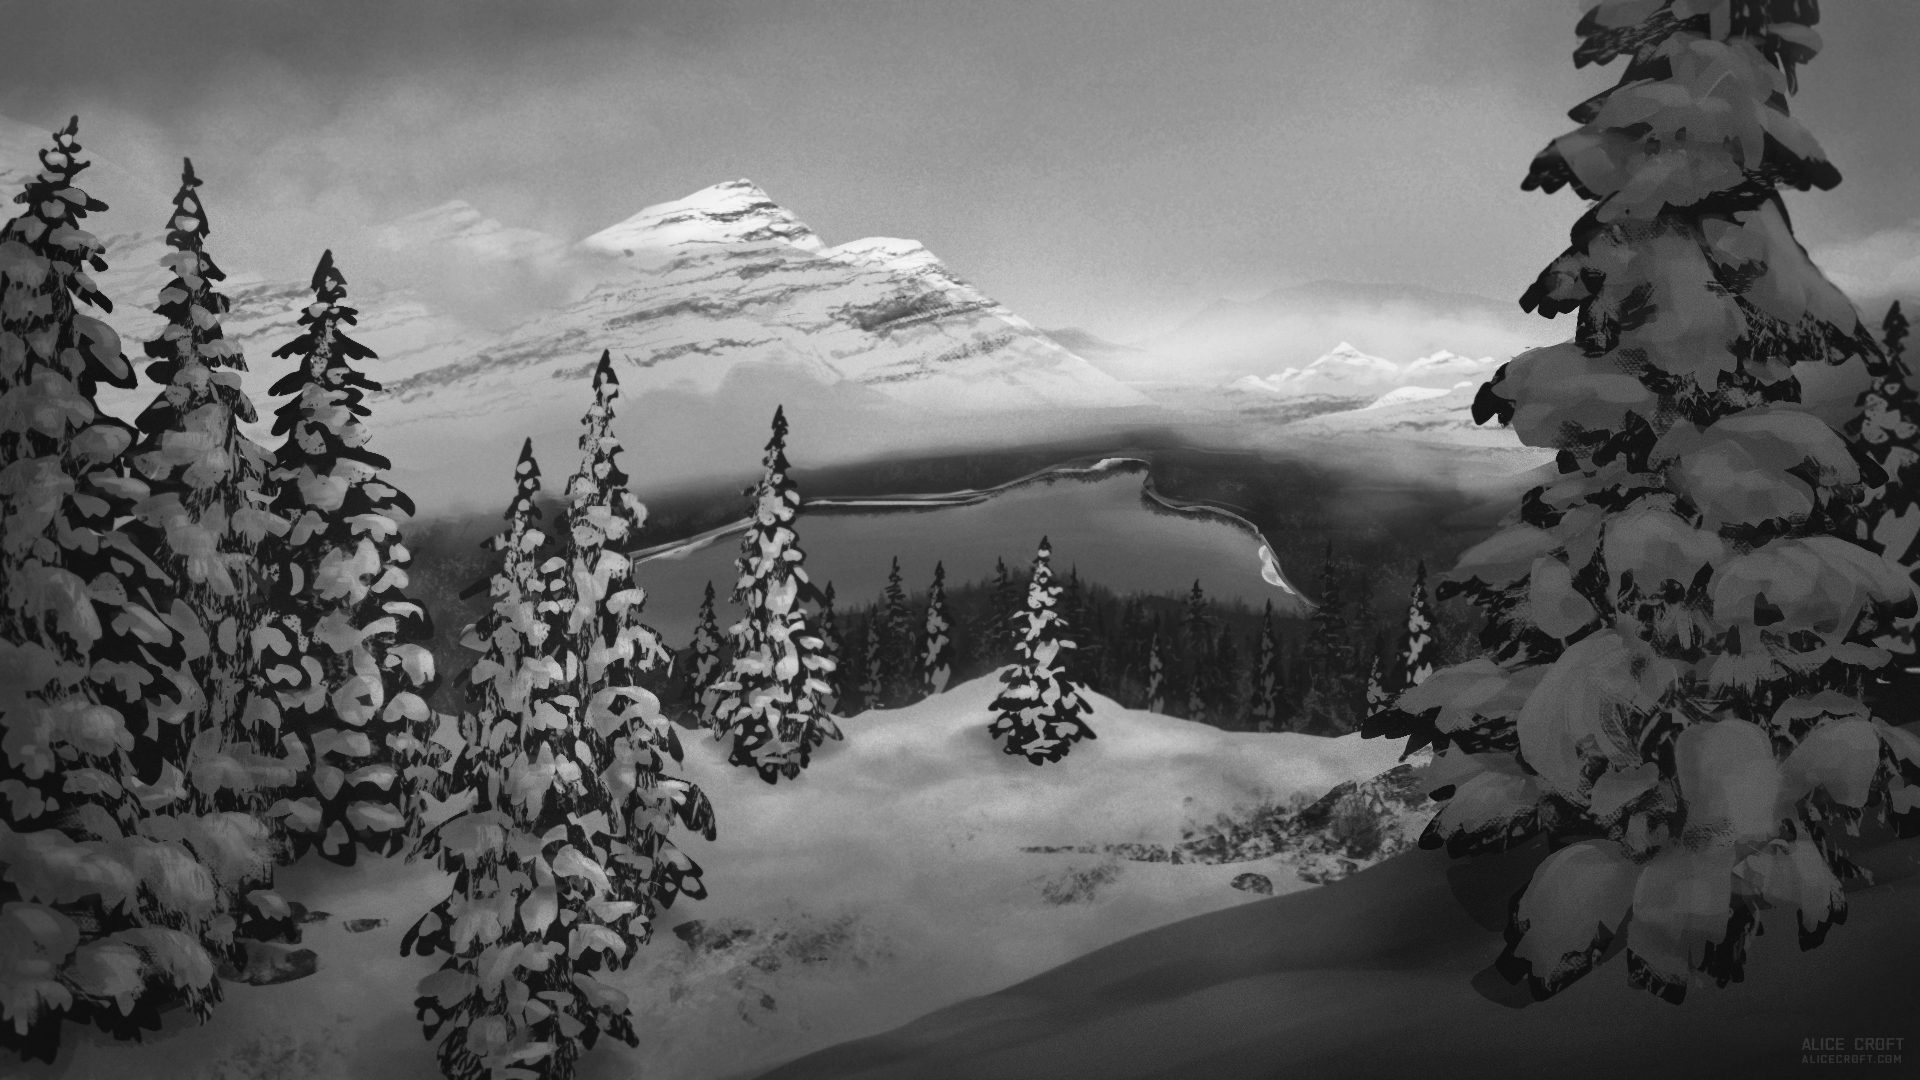 Black and white Art-environment Winter lake snow mountains Landscape spruce Sunrise by artist Alice Croft Зима озеро горы ёлки снег рассвет черно-белый